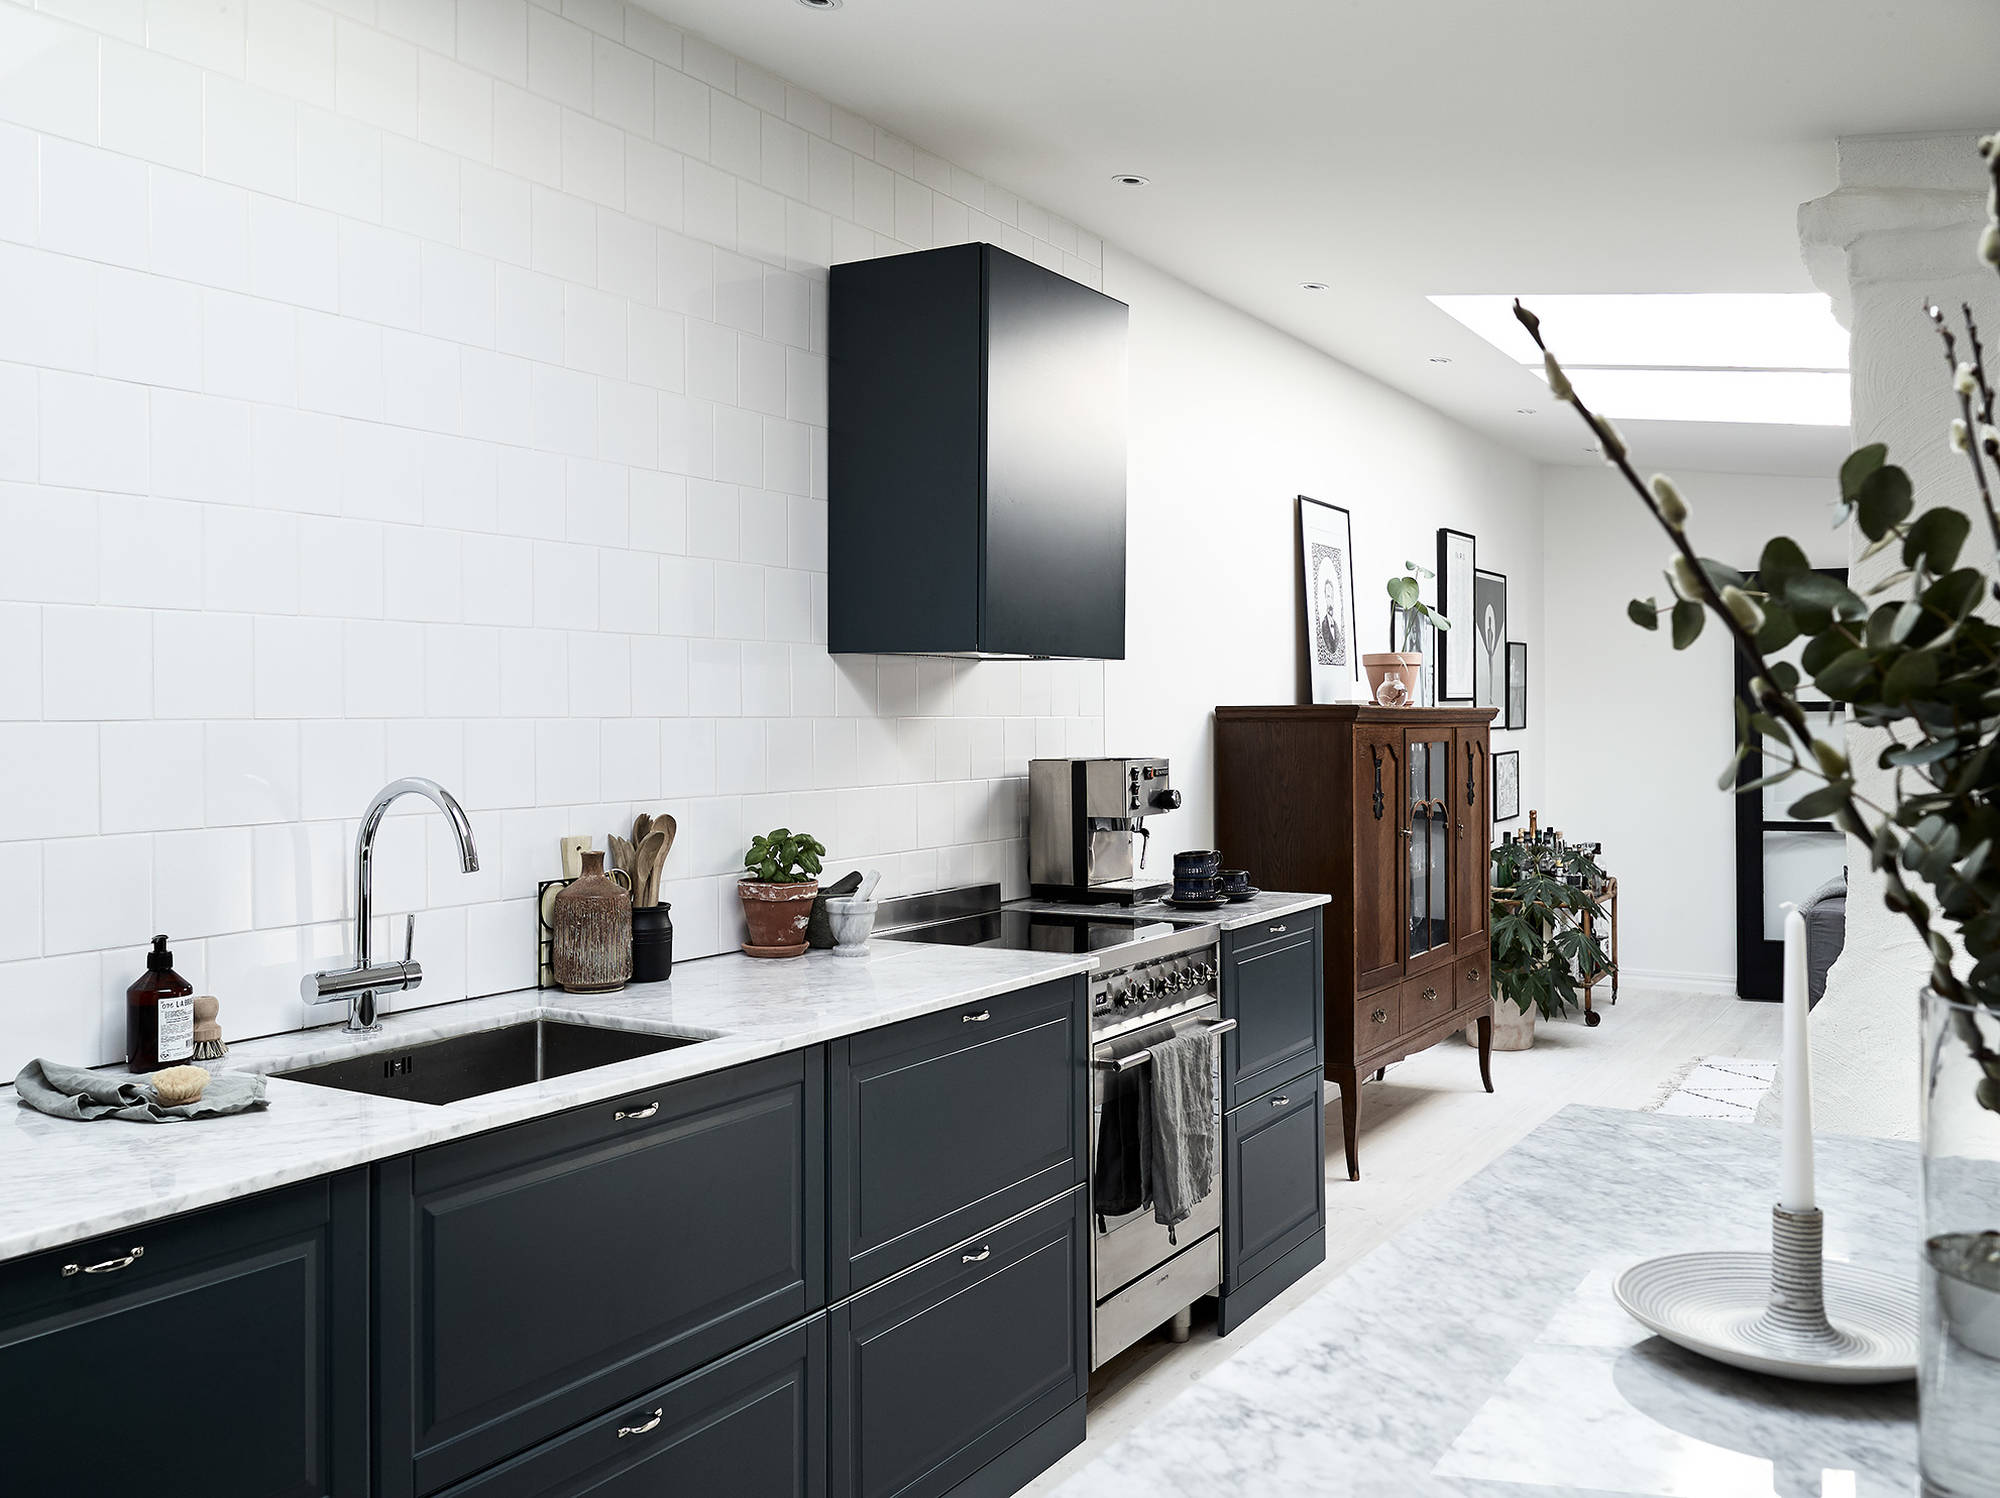 Petrol blue kitchen coco lapine designcoco lapine design for Galley kitchen without upper cabinets